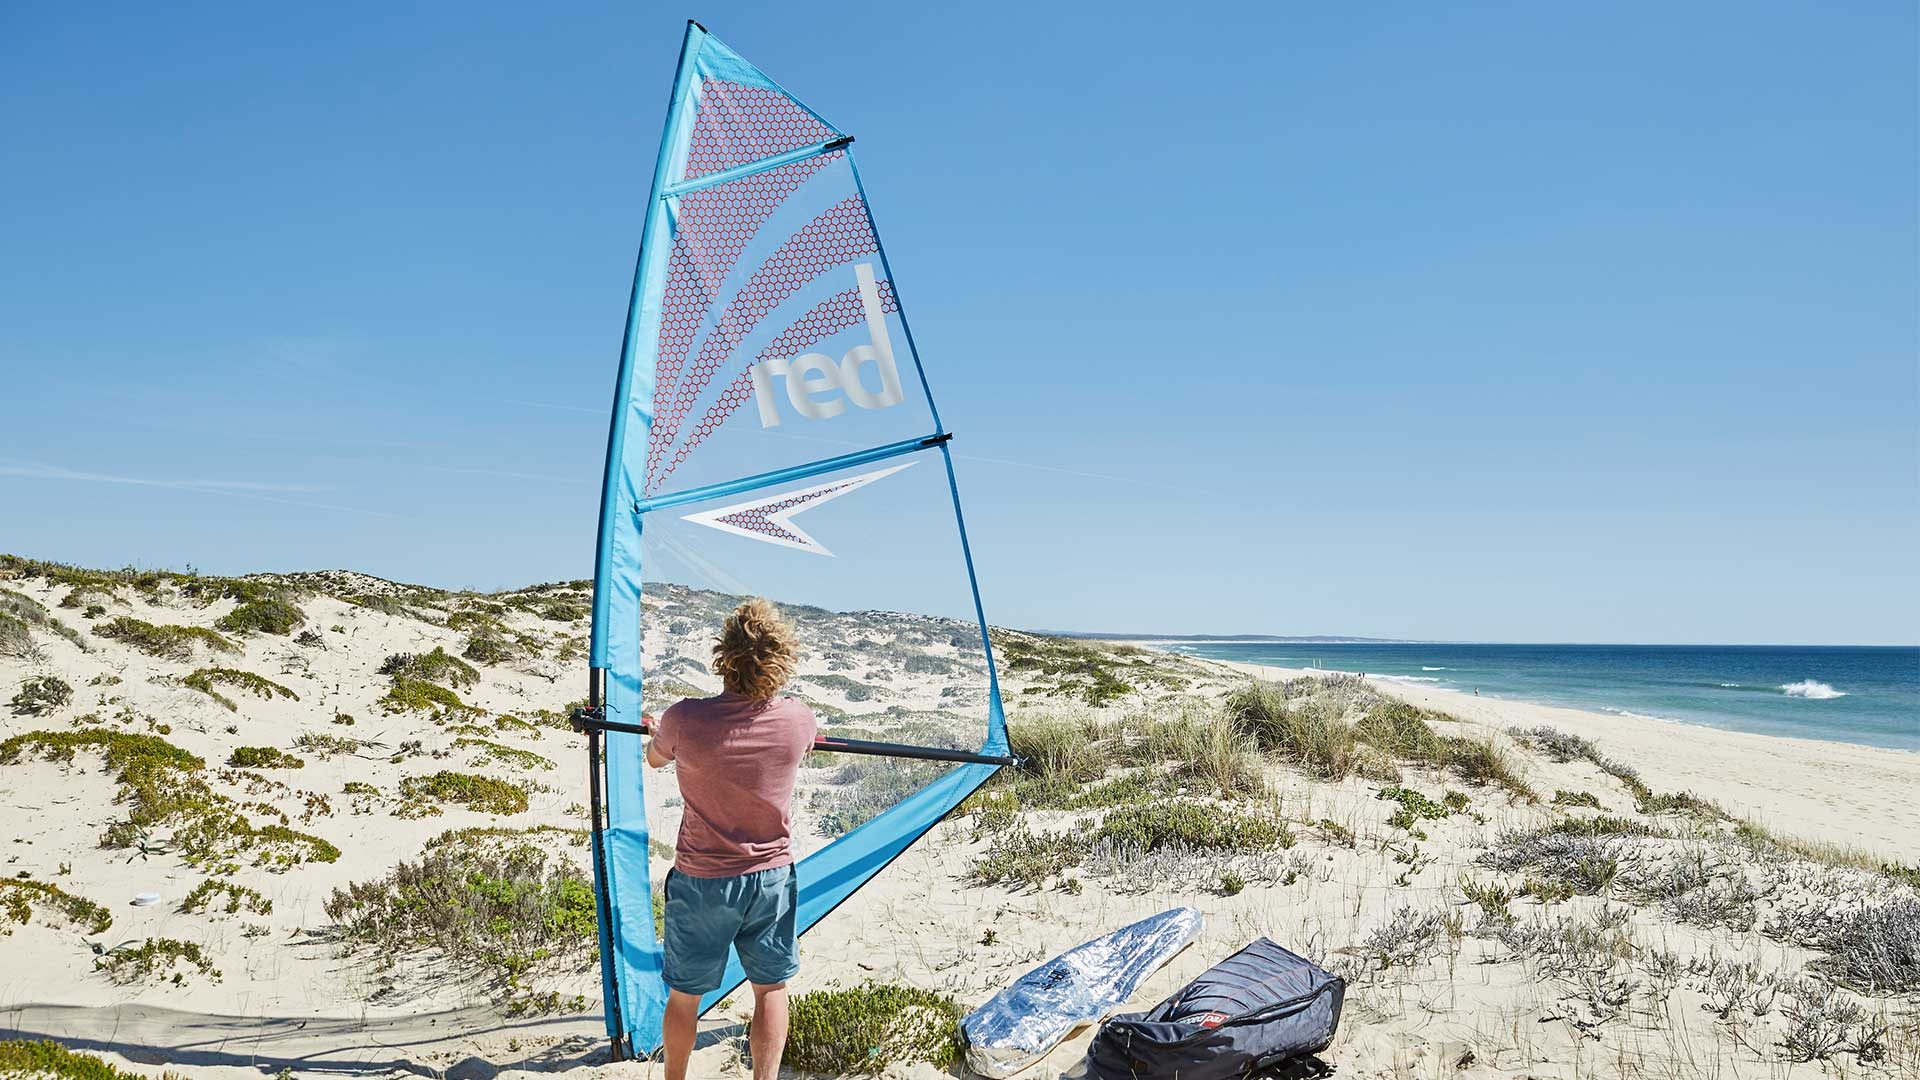 redpaddleco-107-wind-inflatable-paddle-board-desktop-gallery-2